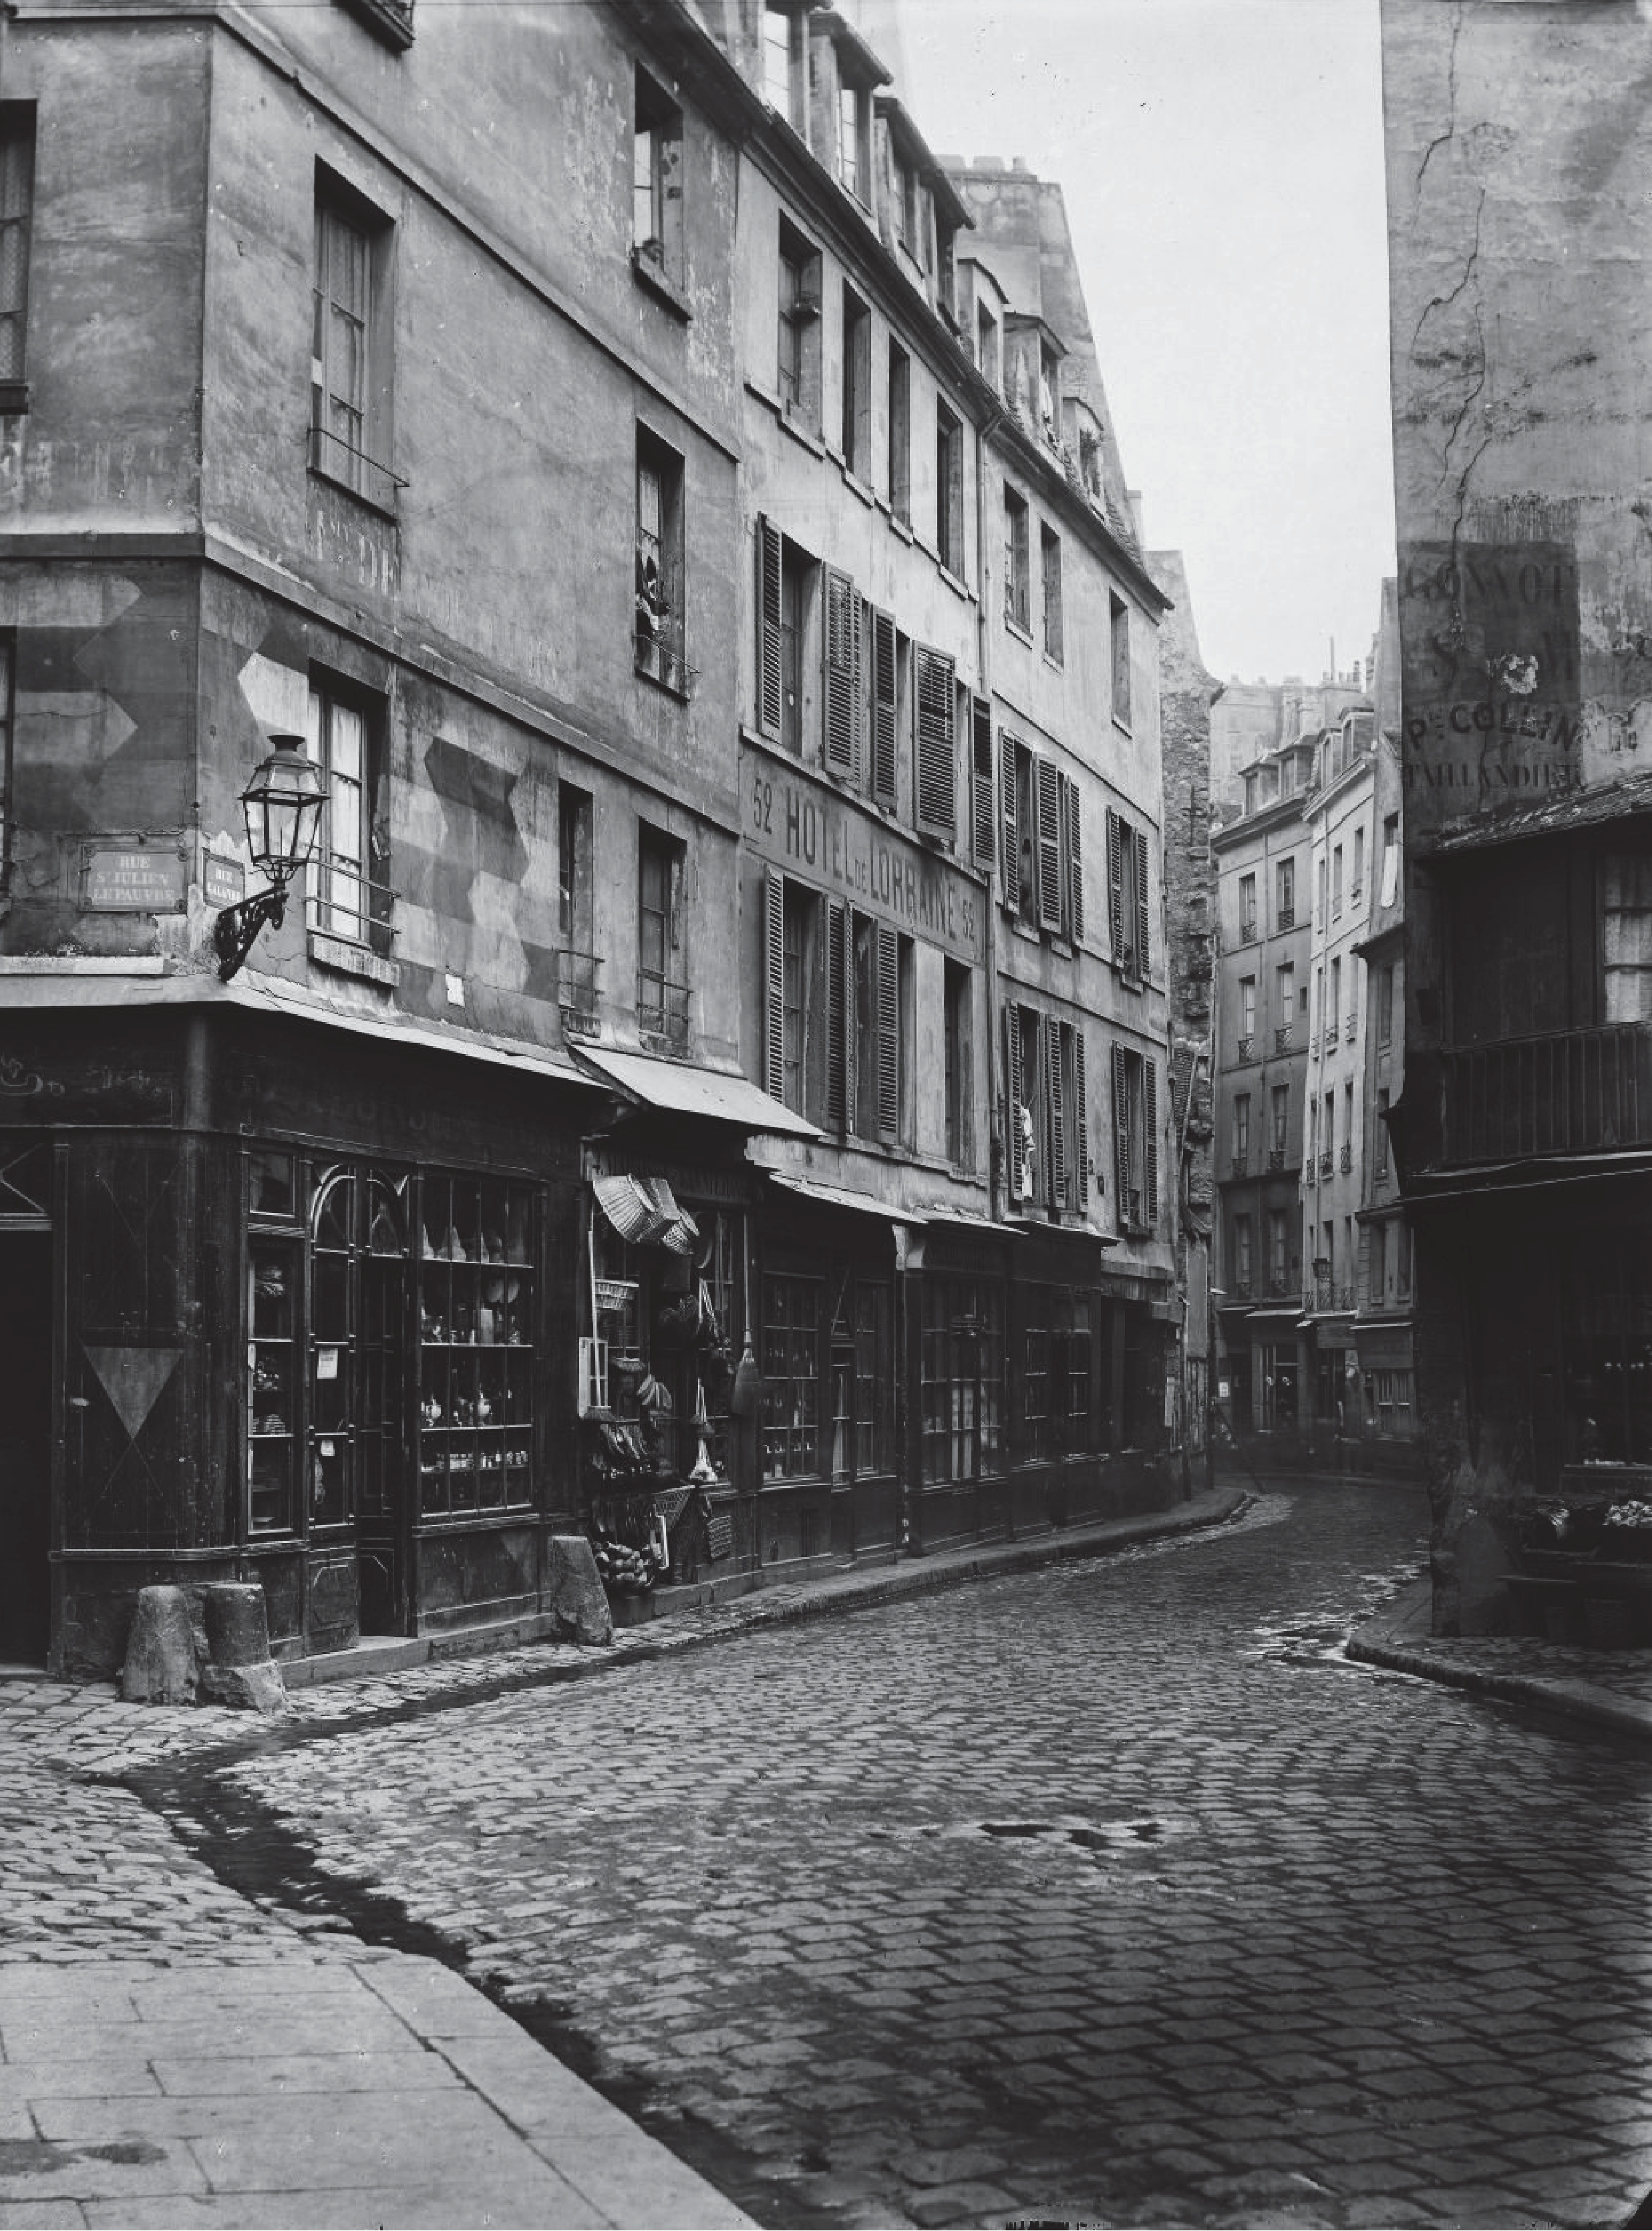 https://i.ibb.co/NZwYm1t/1860-rue-Galande-Charles-Marville.jpg